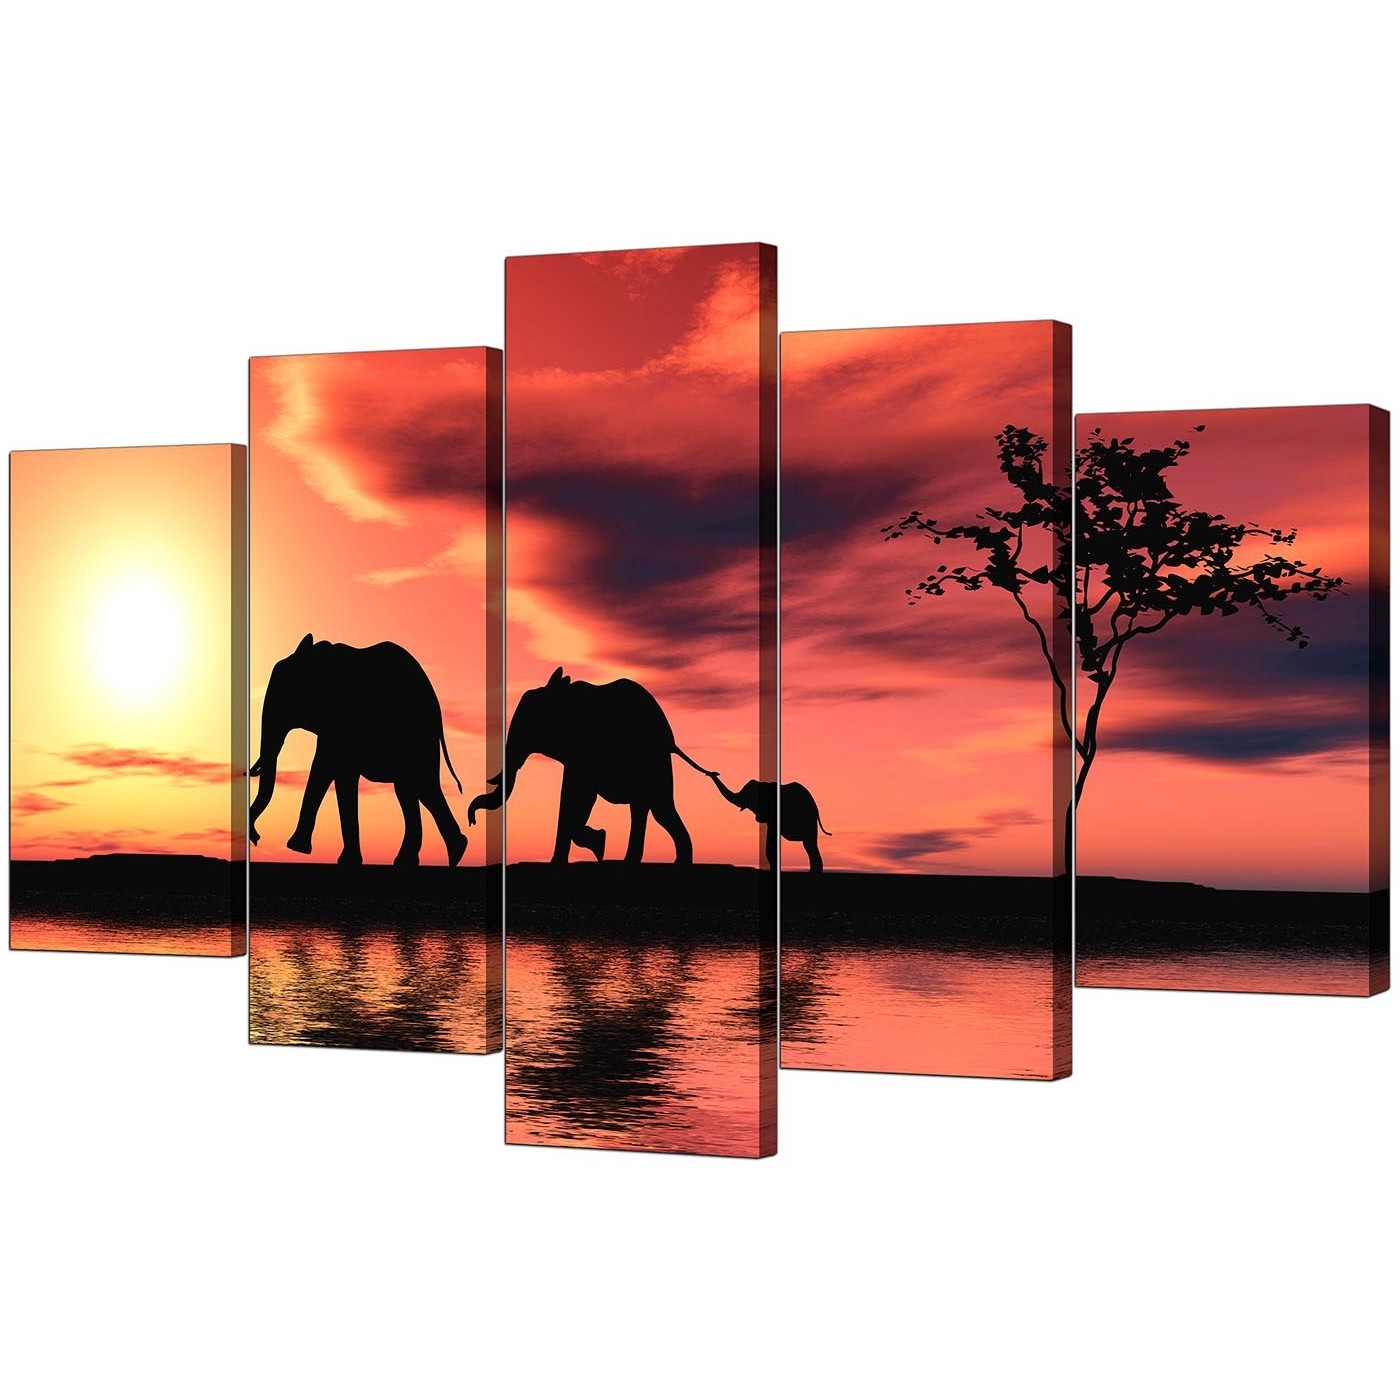 Orange Canvas Wall Art Pertaining To Popular Extra Large Elephants Canvas Prints 5 Piece In Orange (Gallery 9 of 15)